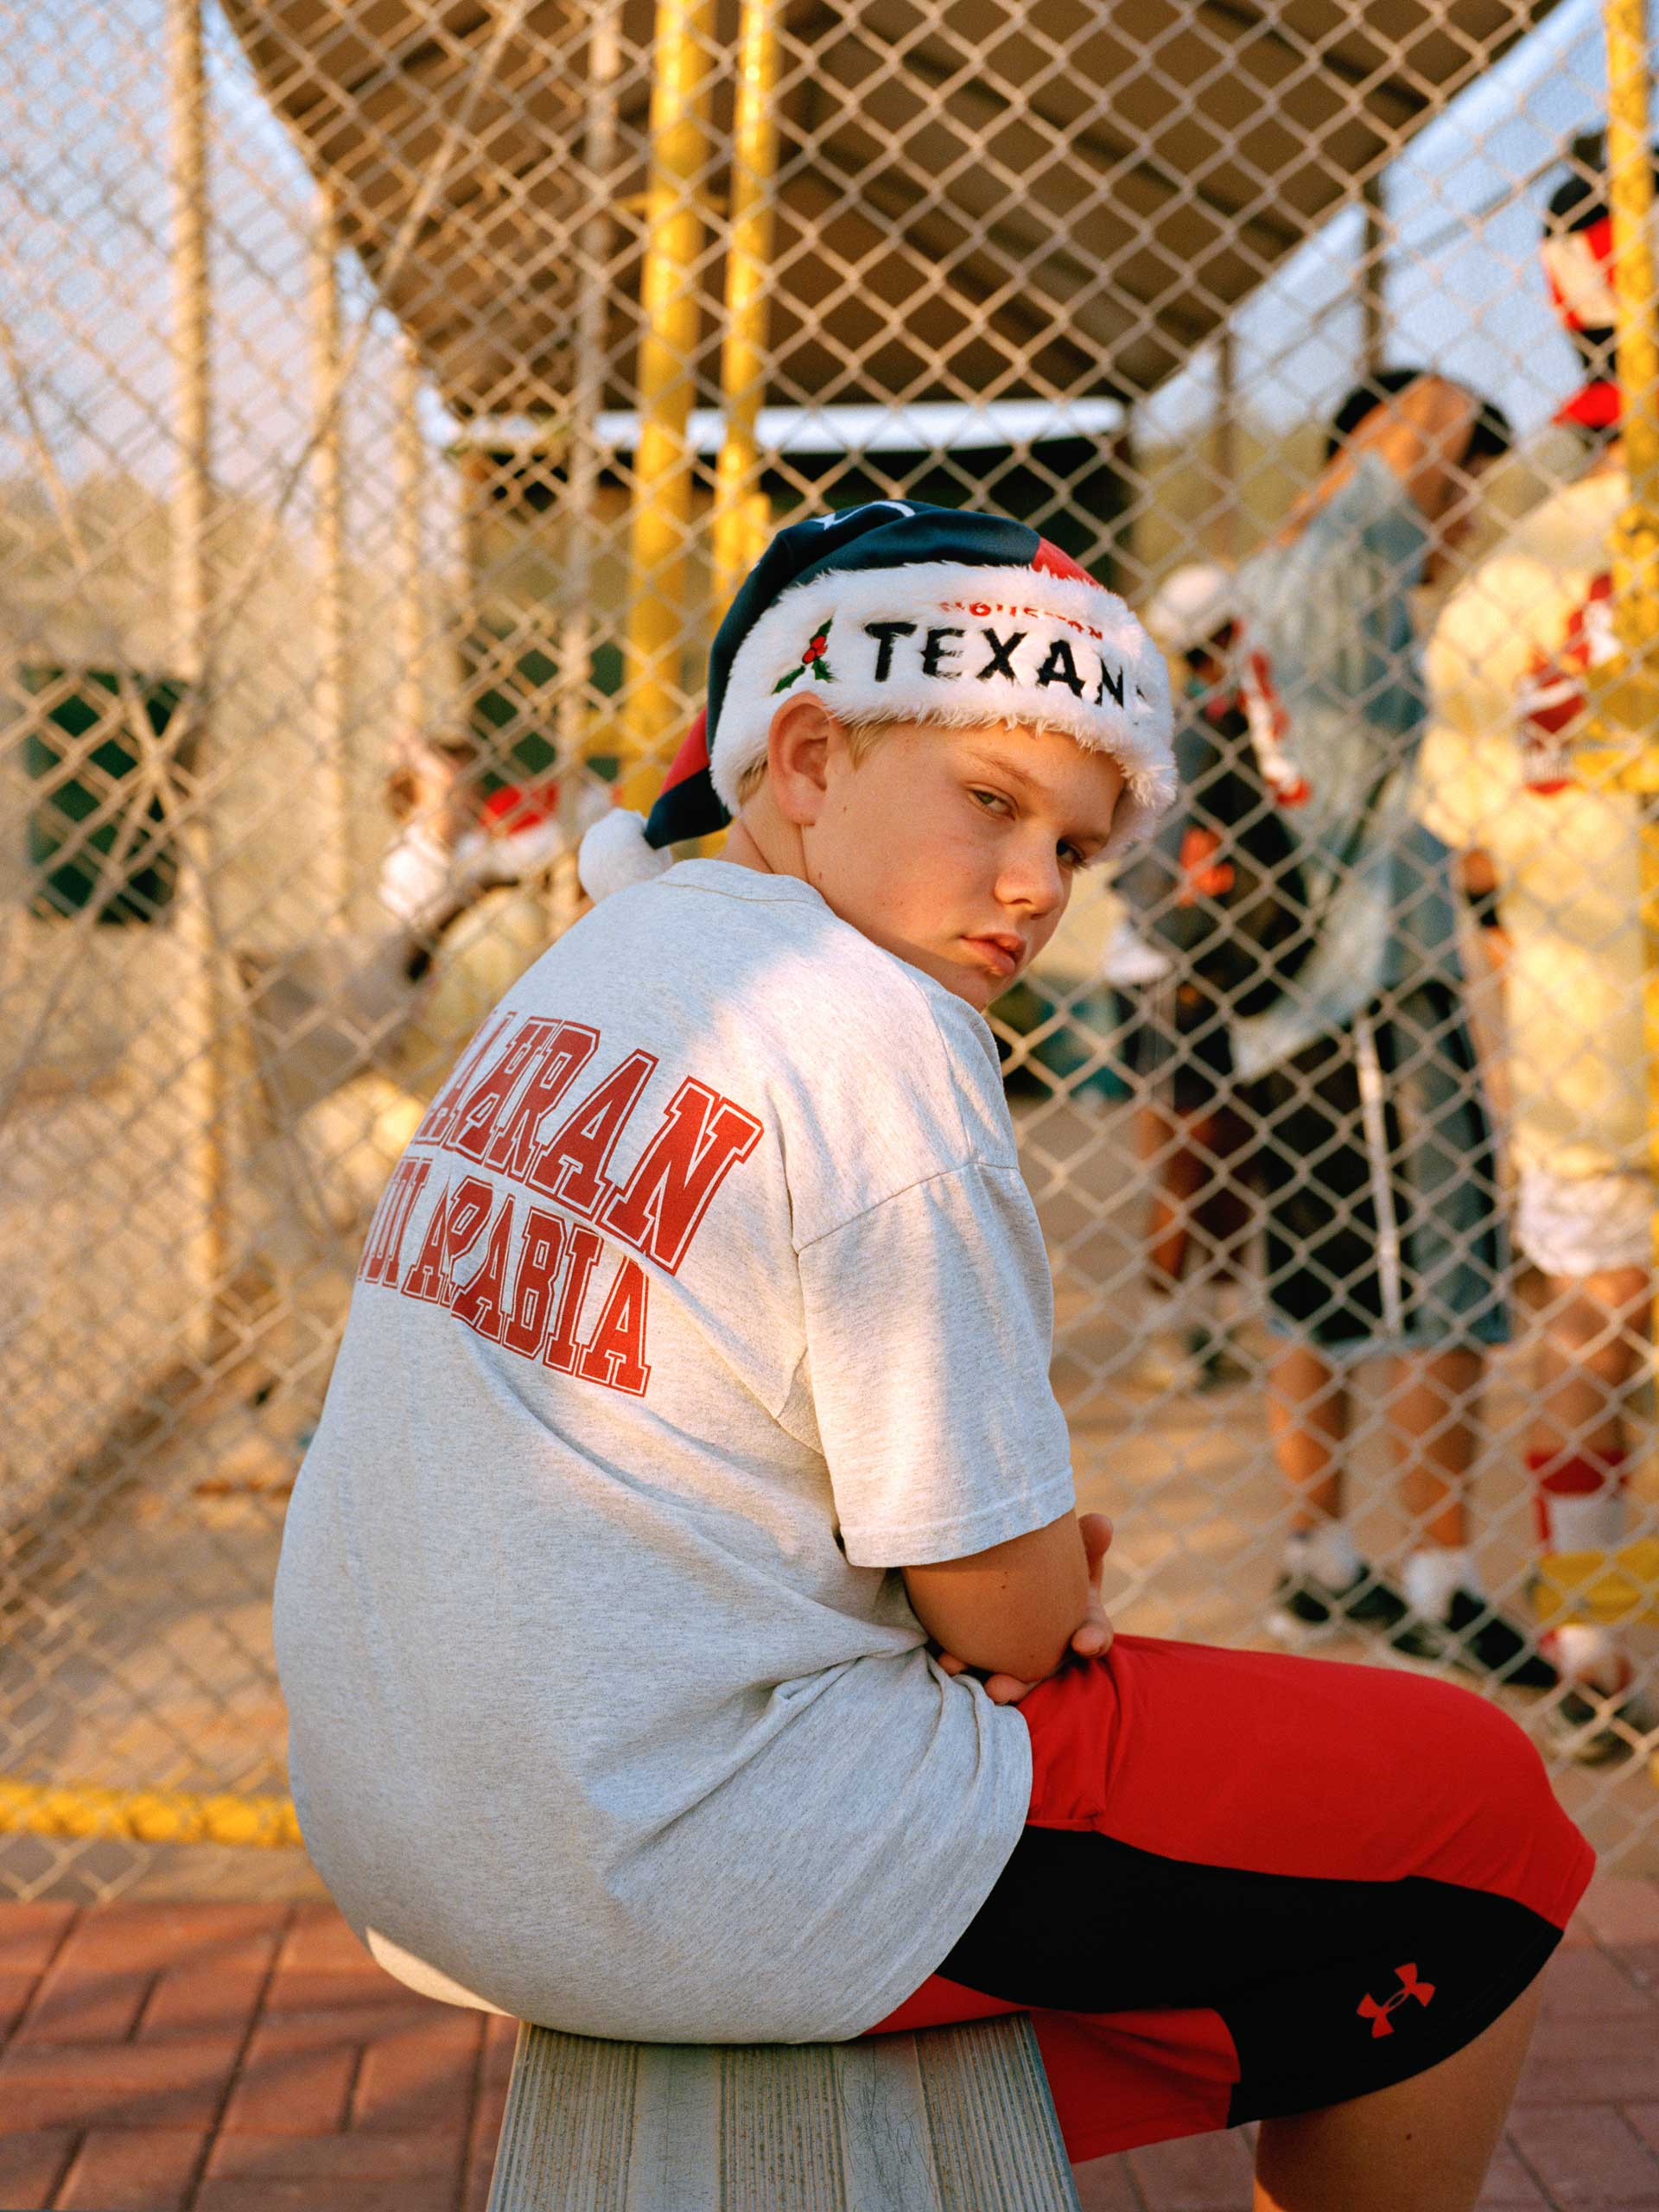 An onlooker wears his Texans Santa hat at the annual Returning Student Co-ed Softball game during Christmas time in Dhahran. Aramco schooling runs from kindergarten to ninth grade. After this time, schooling is generally continued overseas or in one of the nearby international schools.